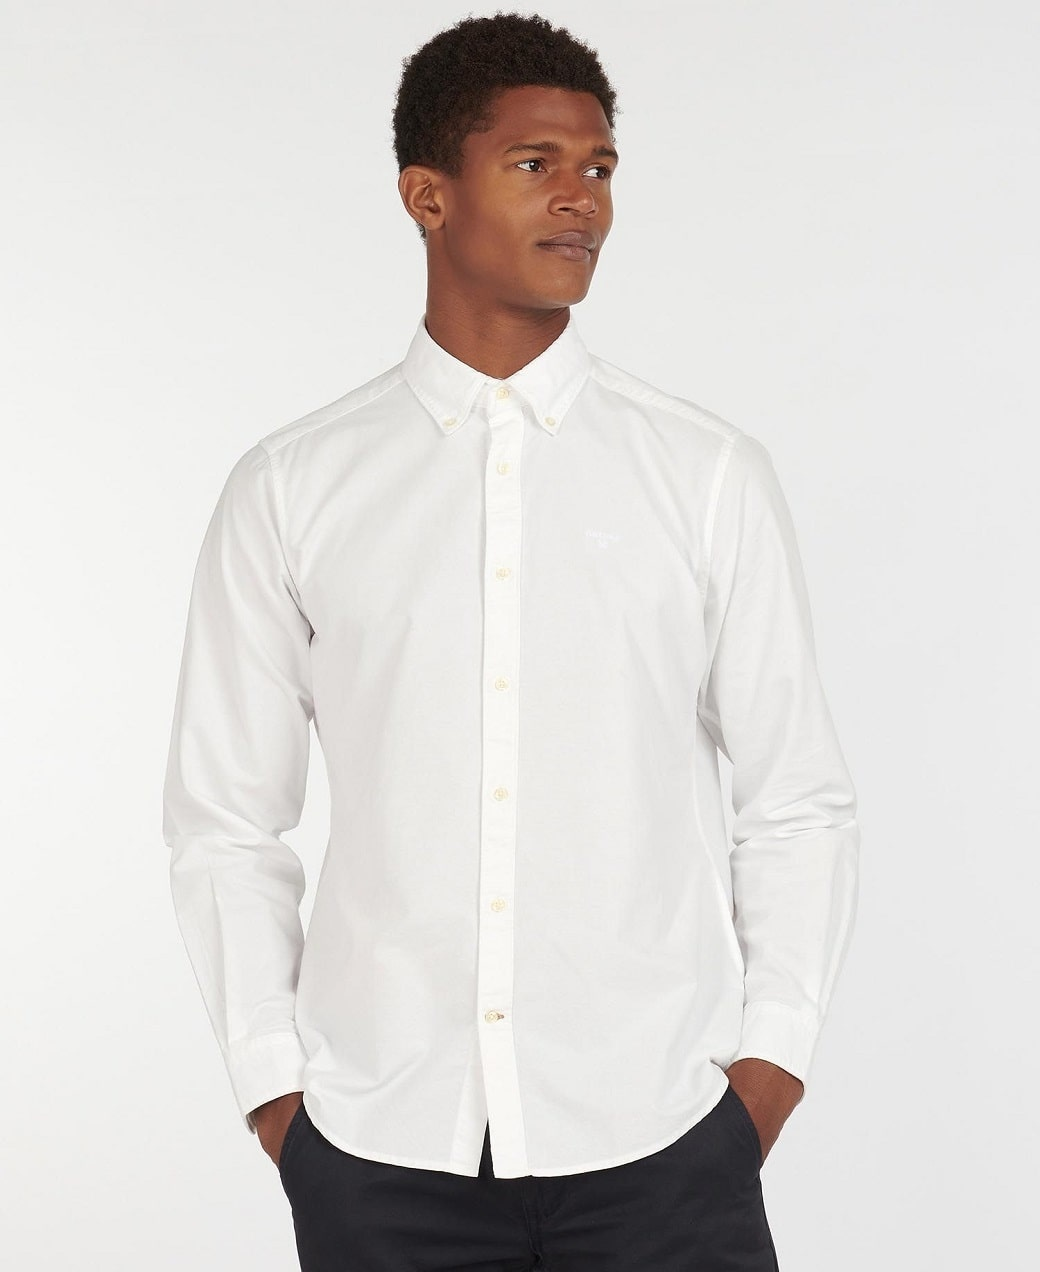 Barbour Oxford 13 Tailored Shirt White-2